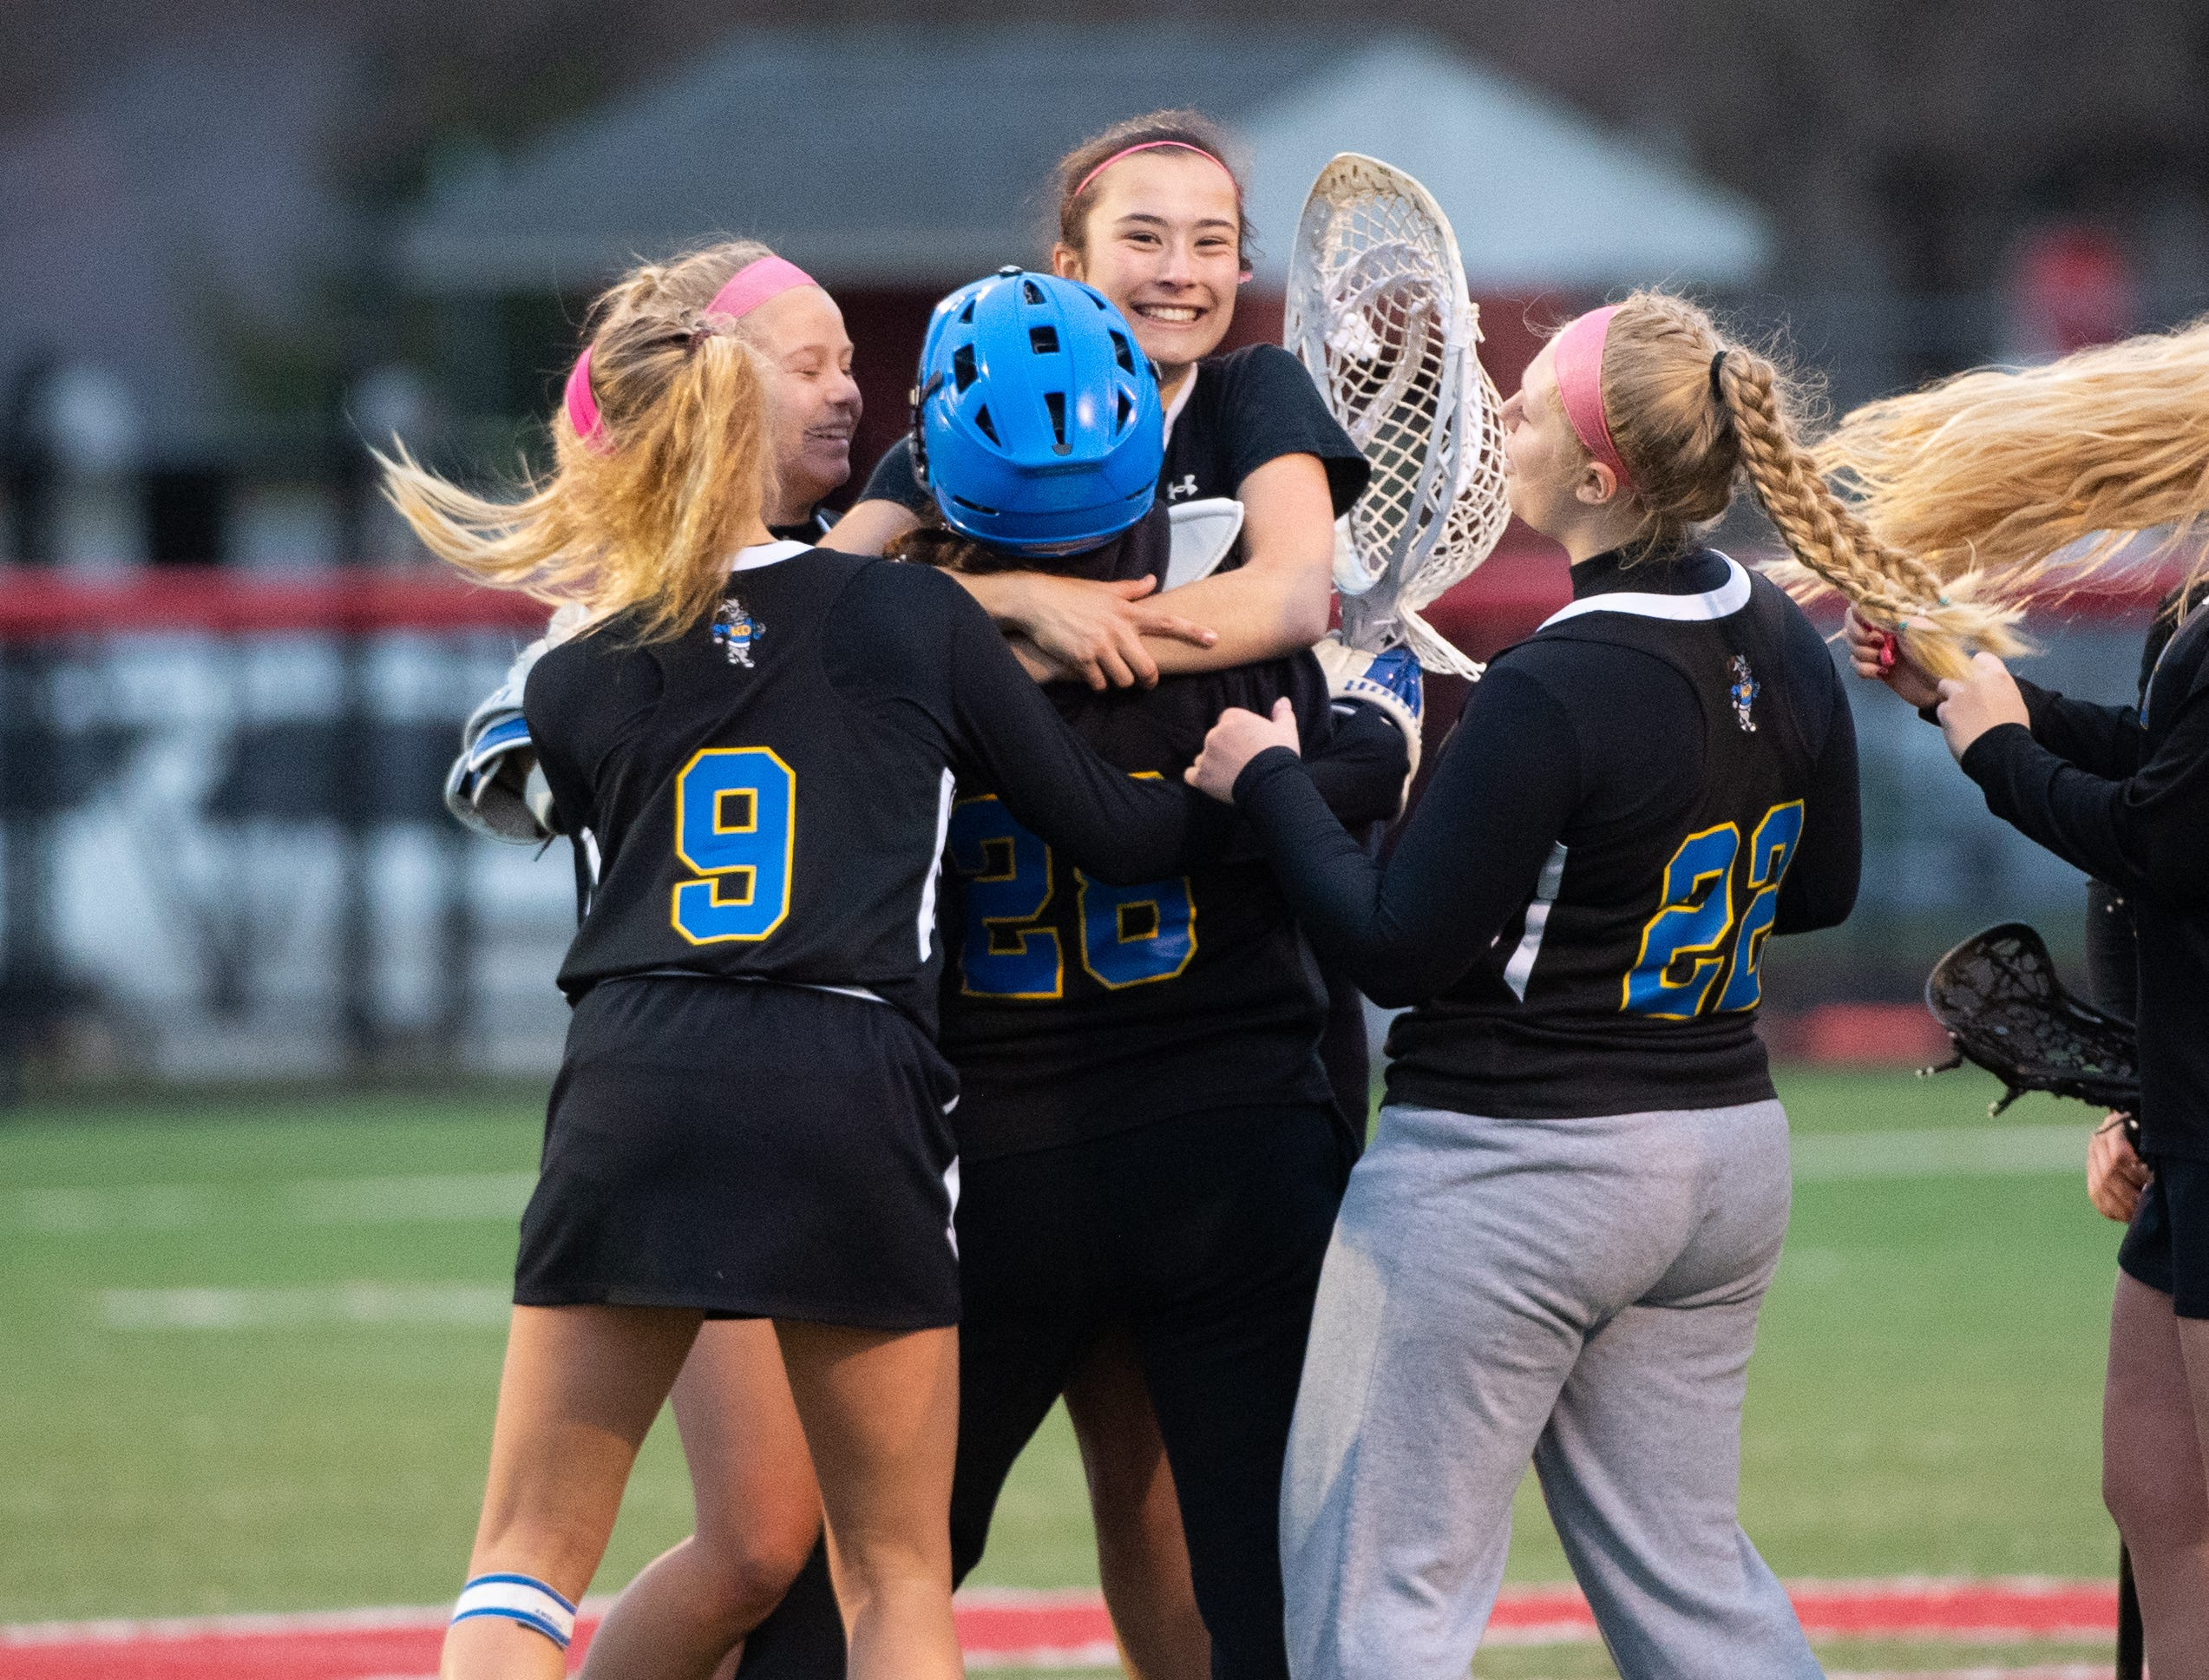 Kennard-Dale celebrates after defeating Susquehannock in a girls' lacrosse game, April 2, 2019 at Susquehannock High School. The Rams defeated the Warriors 17 to 2.